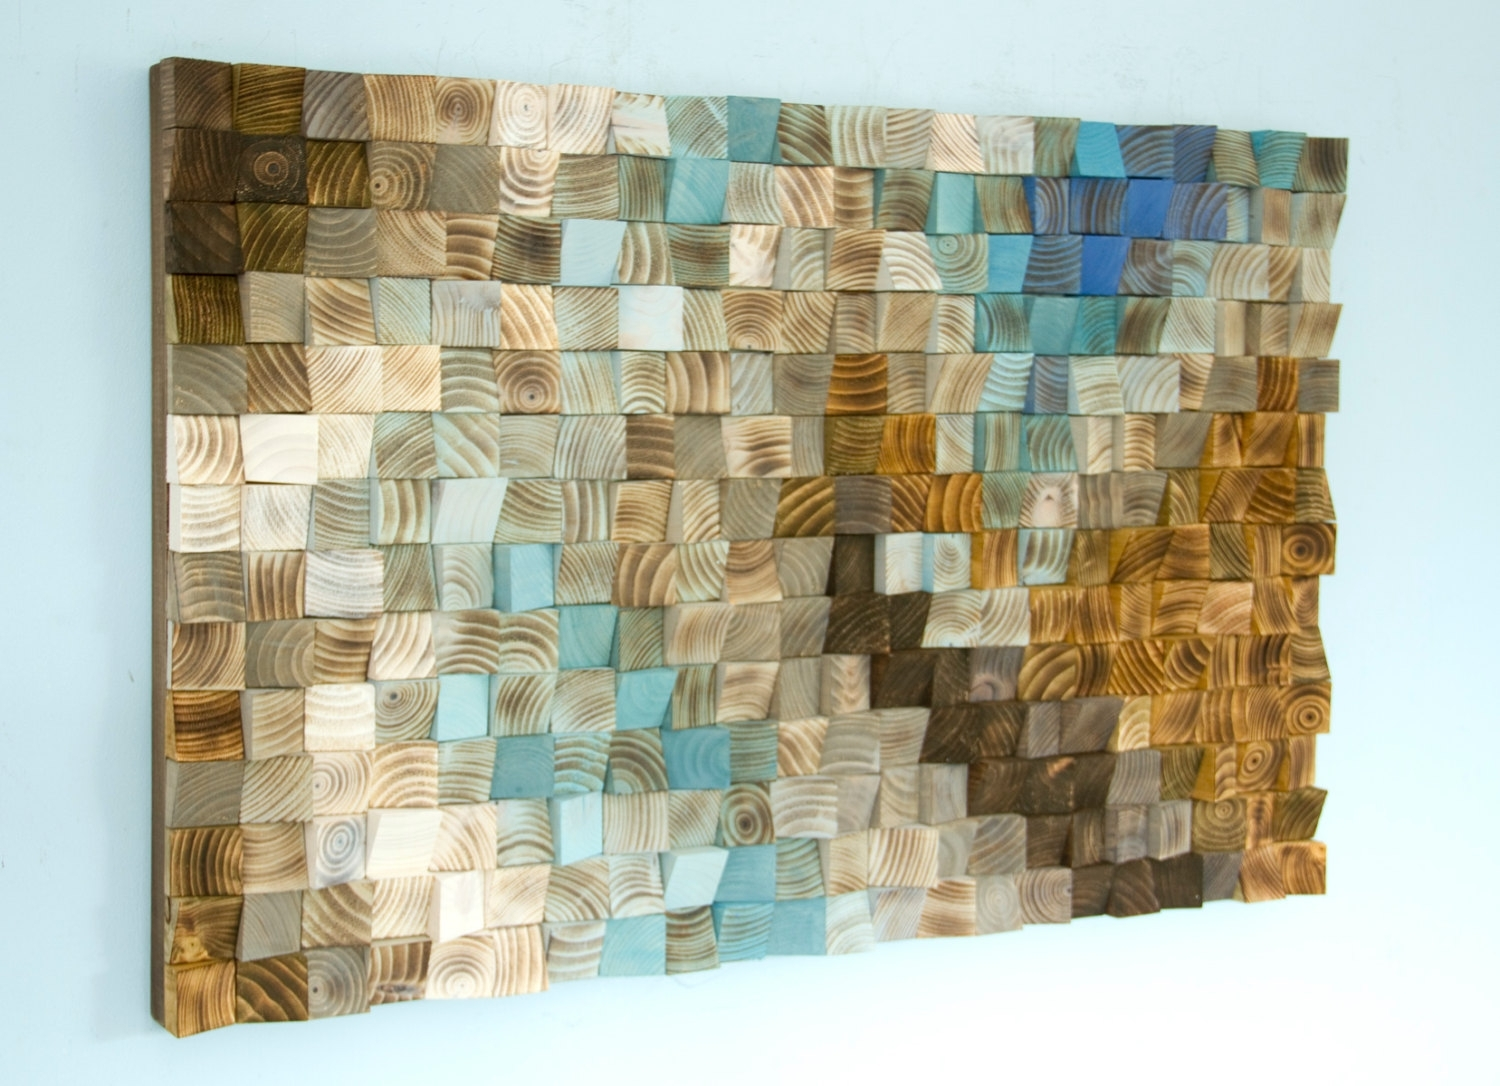 Mosaic Wall Art Elegant Wood Office Decor Geometric 24 X 36 Within intended for Mosaic Wall Art (Image 11 of 20)